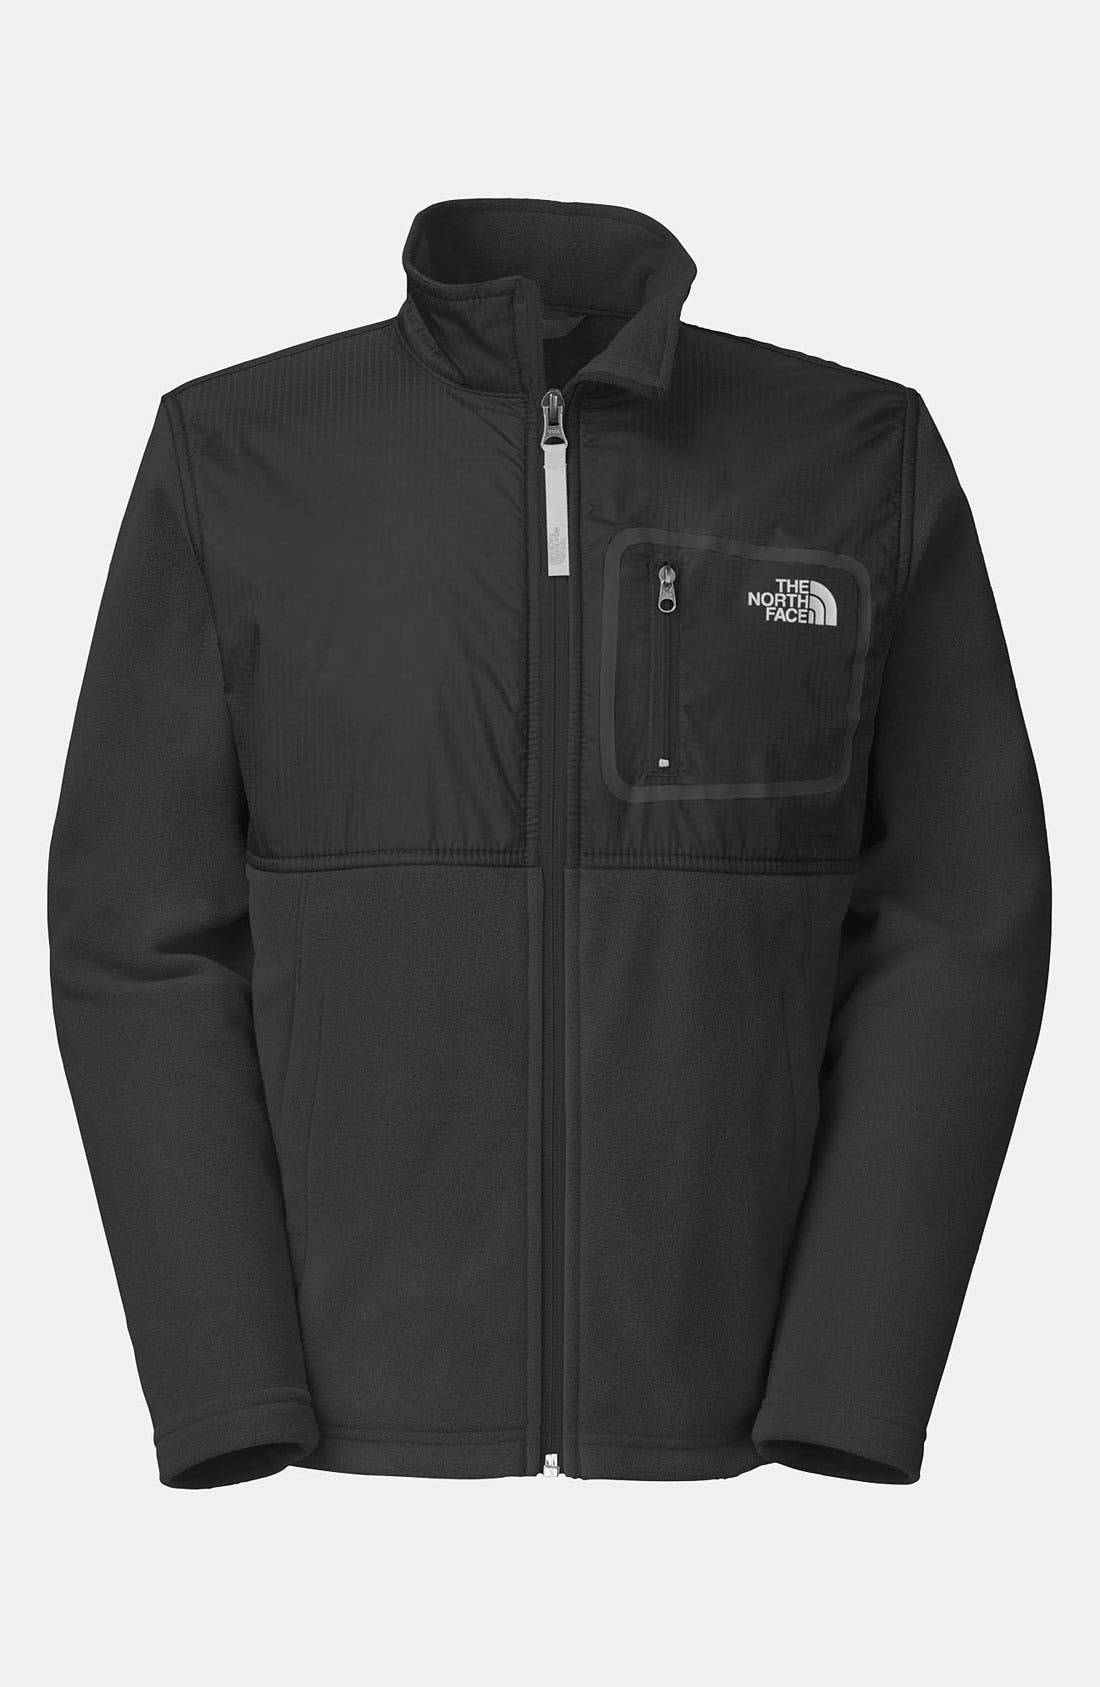 Alternate Image 1 Selected - The North Face 'Peril Glacier' Jacket (Little Boys & Big Boys)